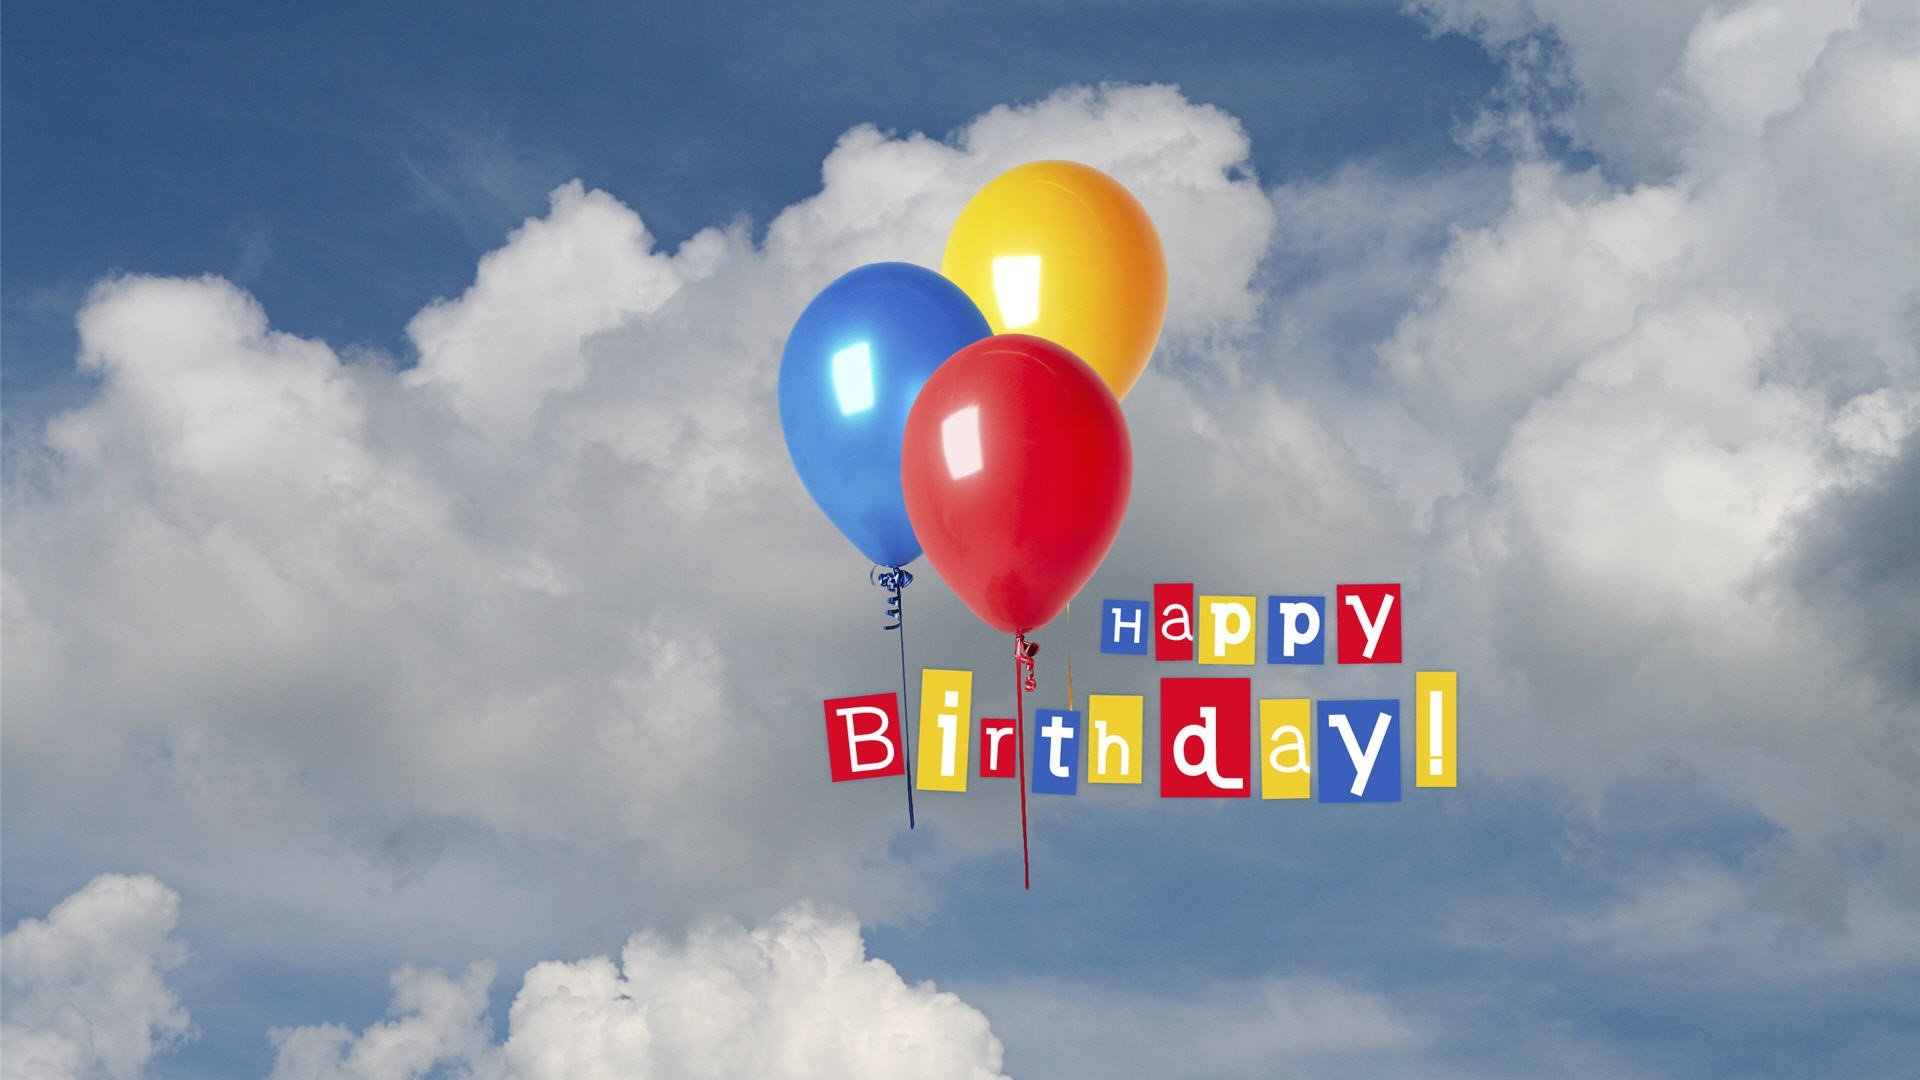 Happy Birthday Greetings in Sky with Balloon Wallpapers HD 1920x1080